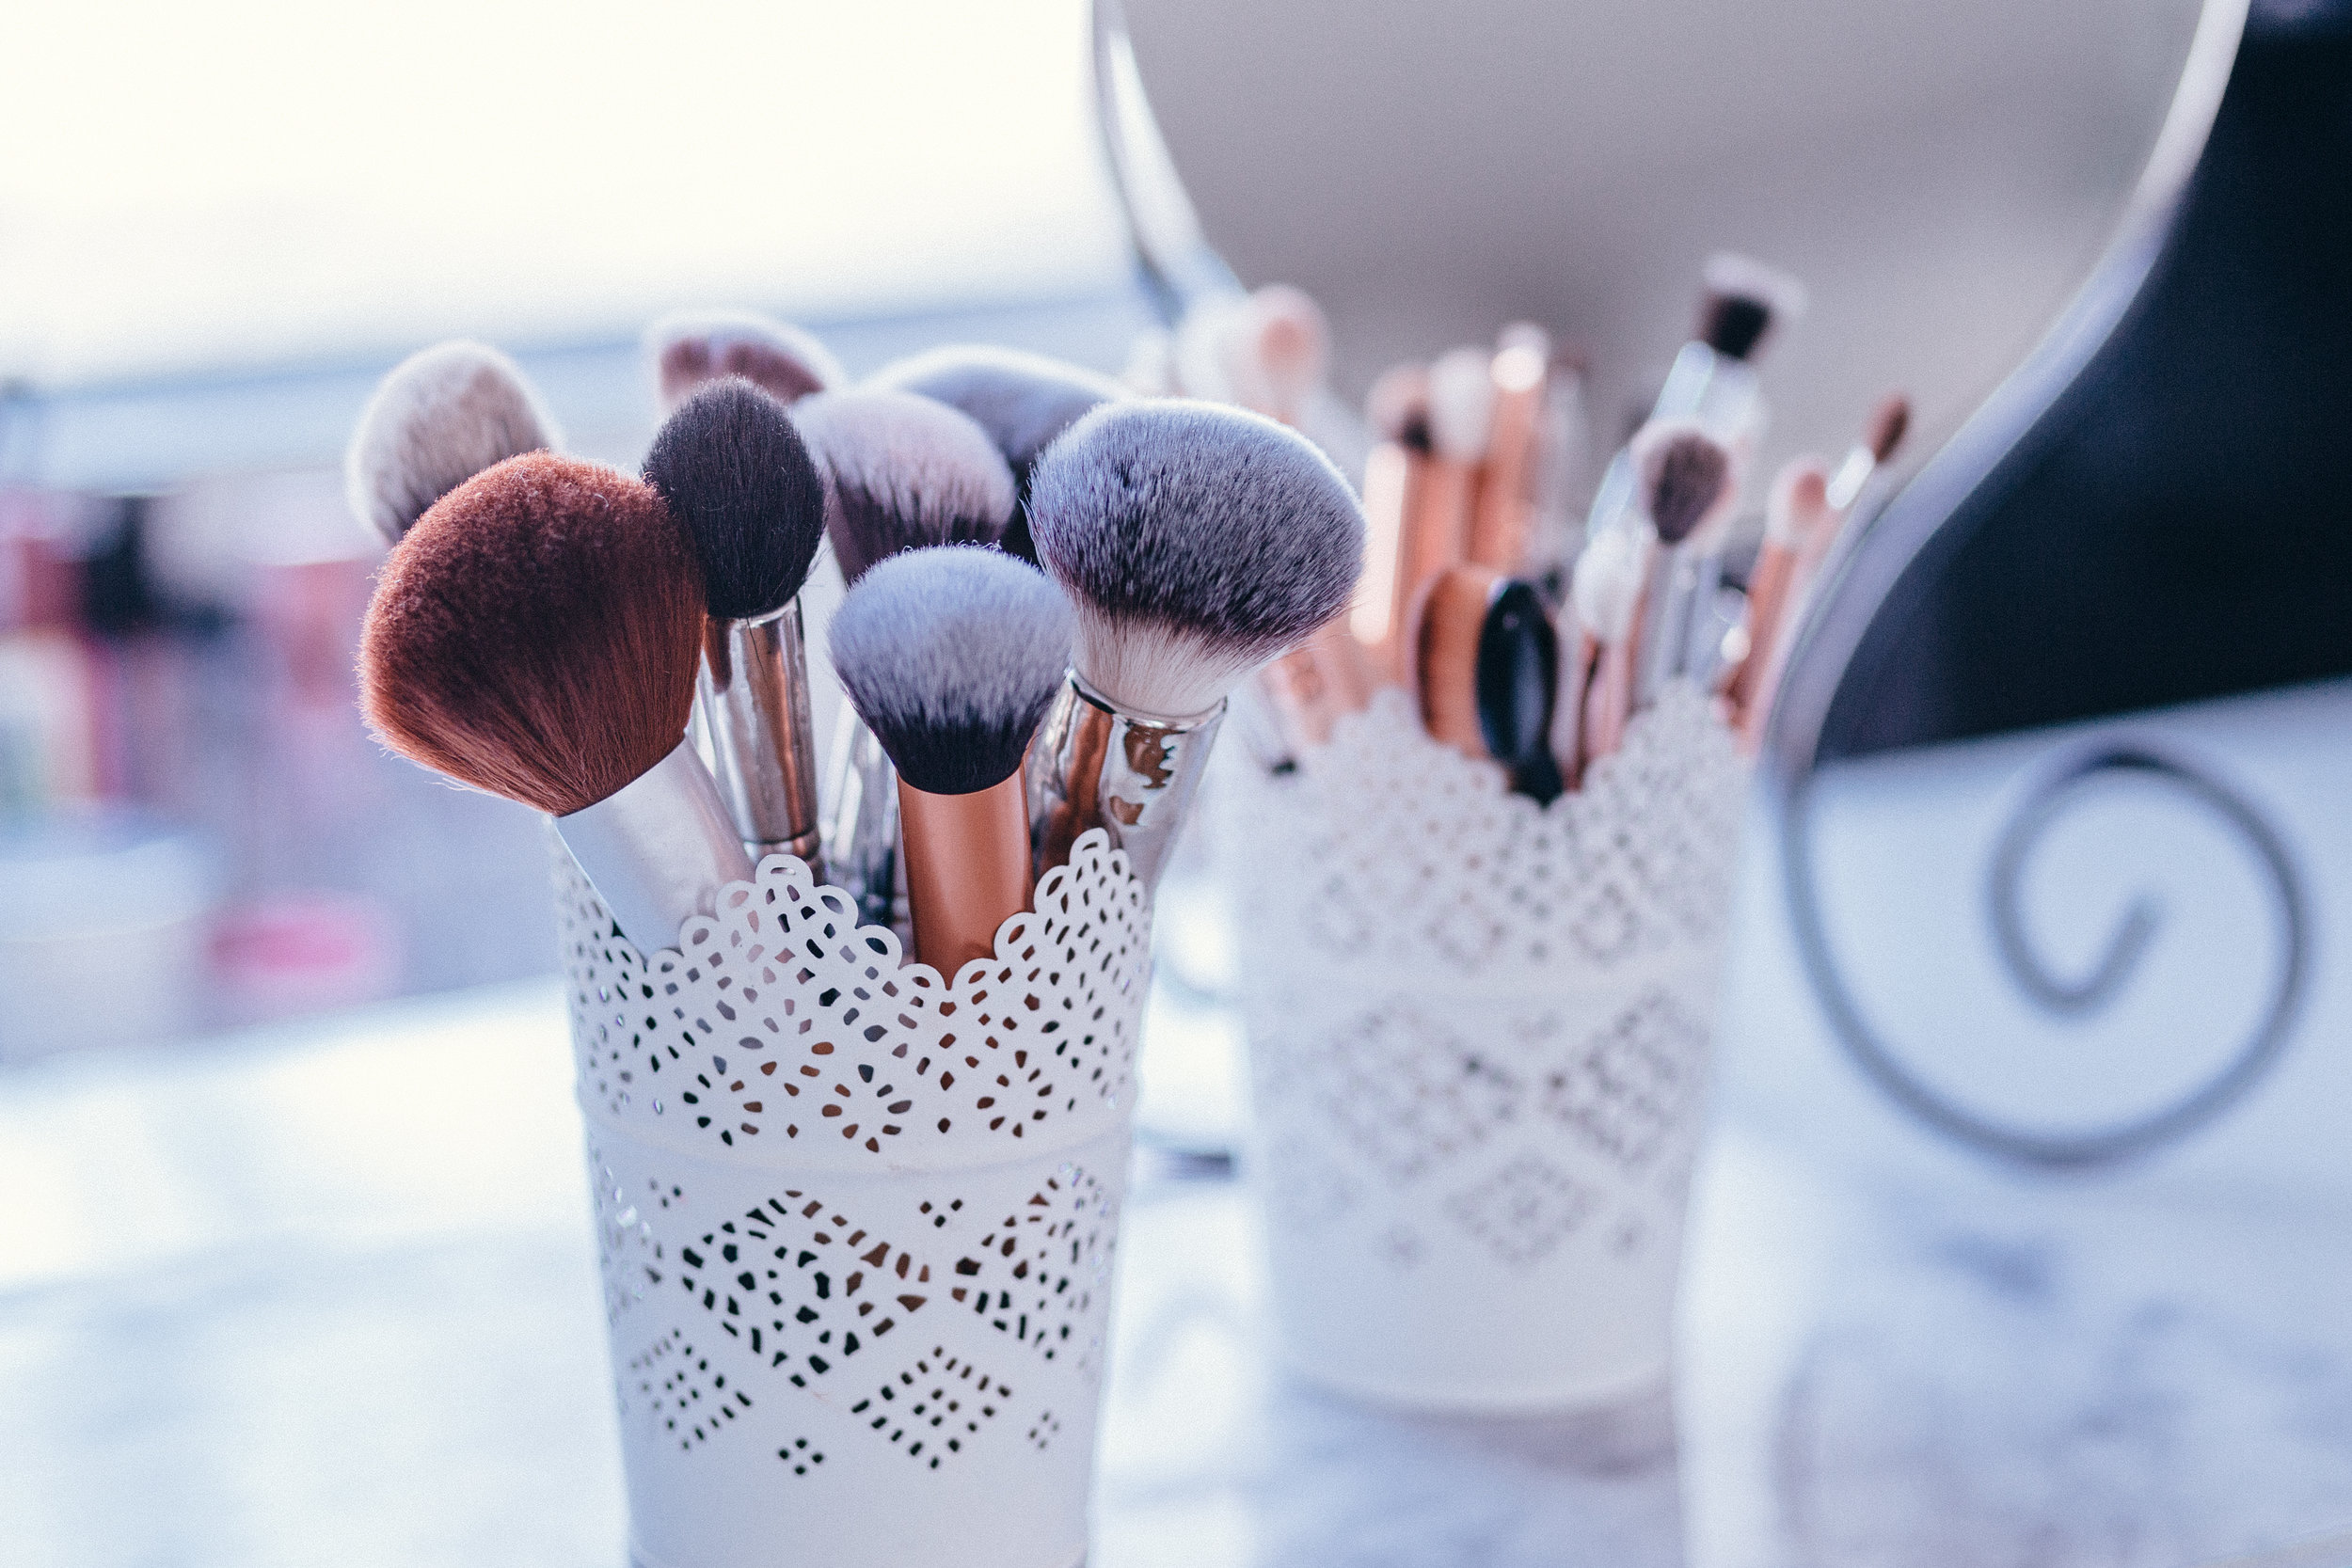 Beauty - Hair Salons, Cosmetics, Make-up Artistry and anything beauty-orientated. We know that your clients are the main focus.We can manage your IT so your clients can relax, book future appointments, pay when required and enjoy your service experience.